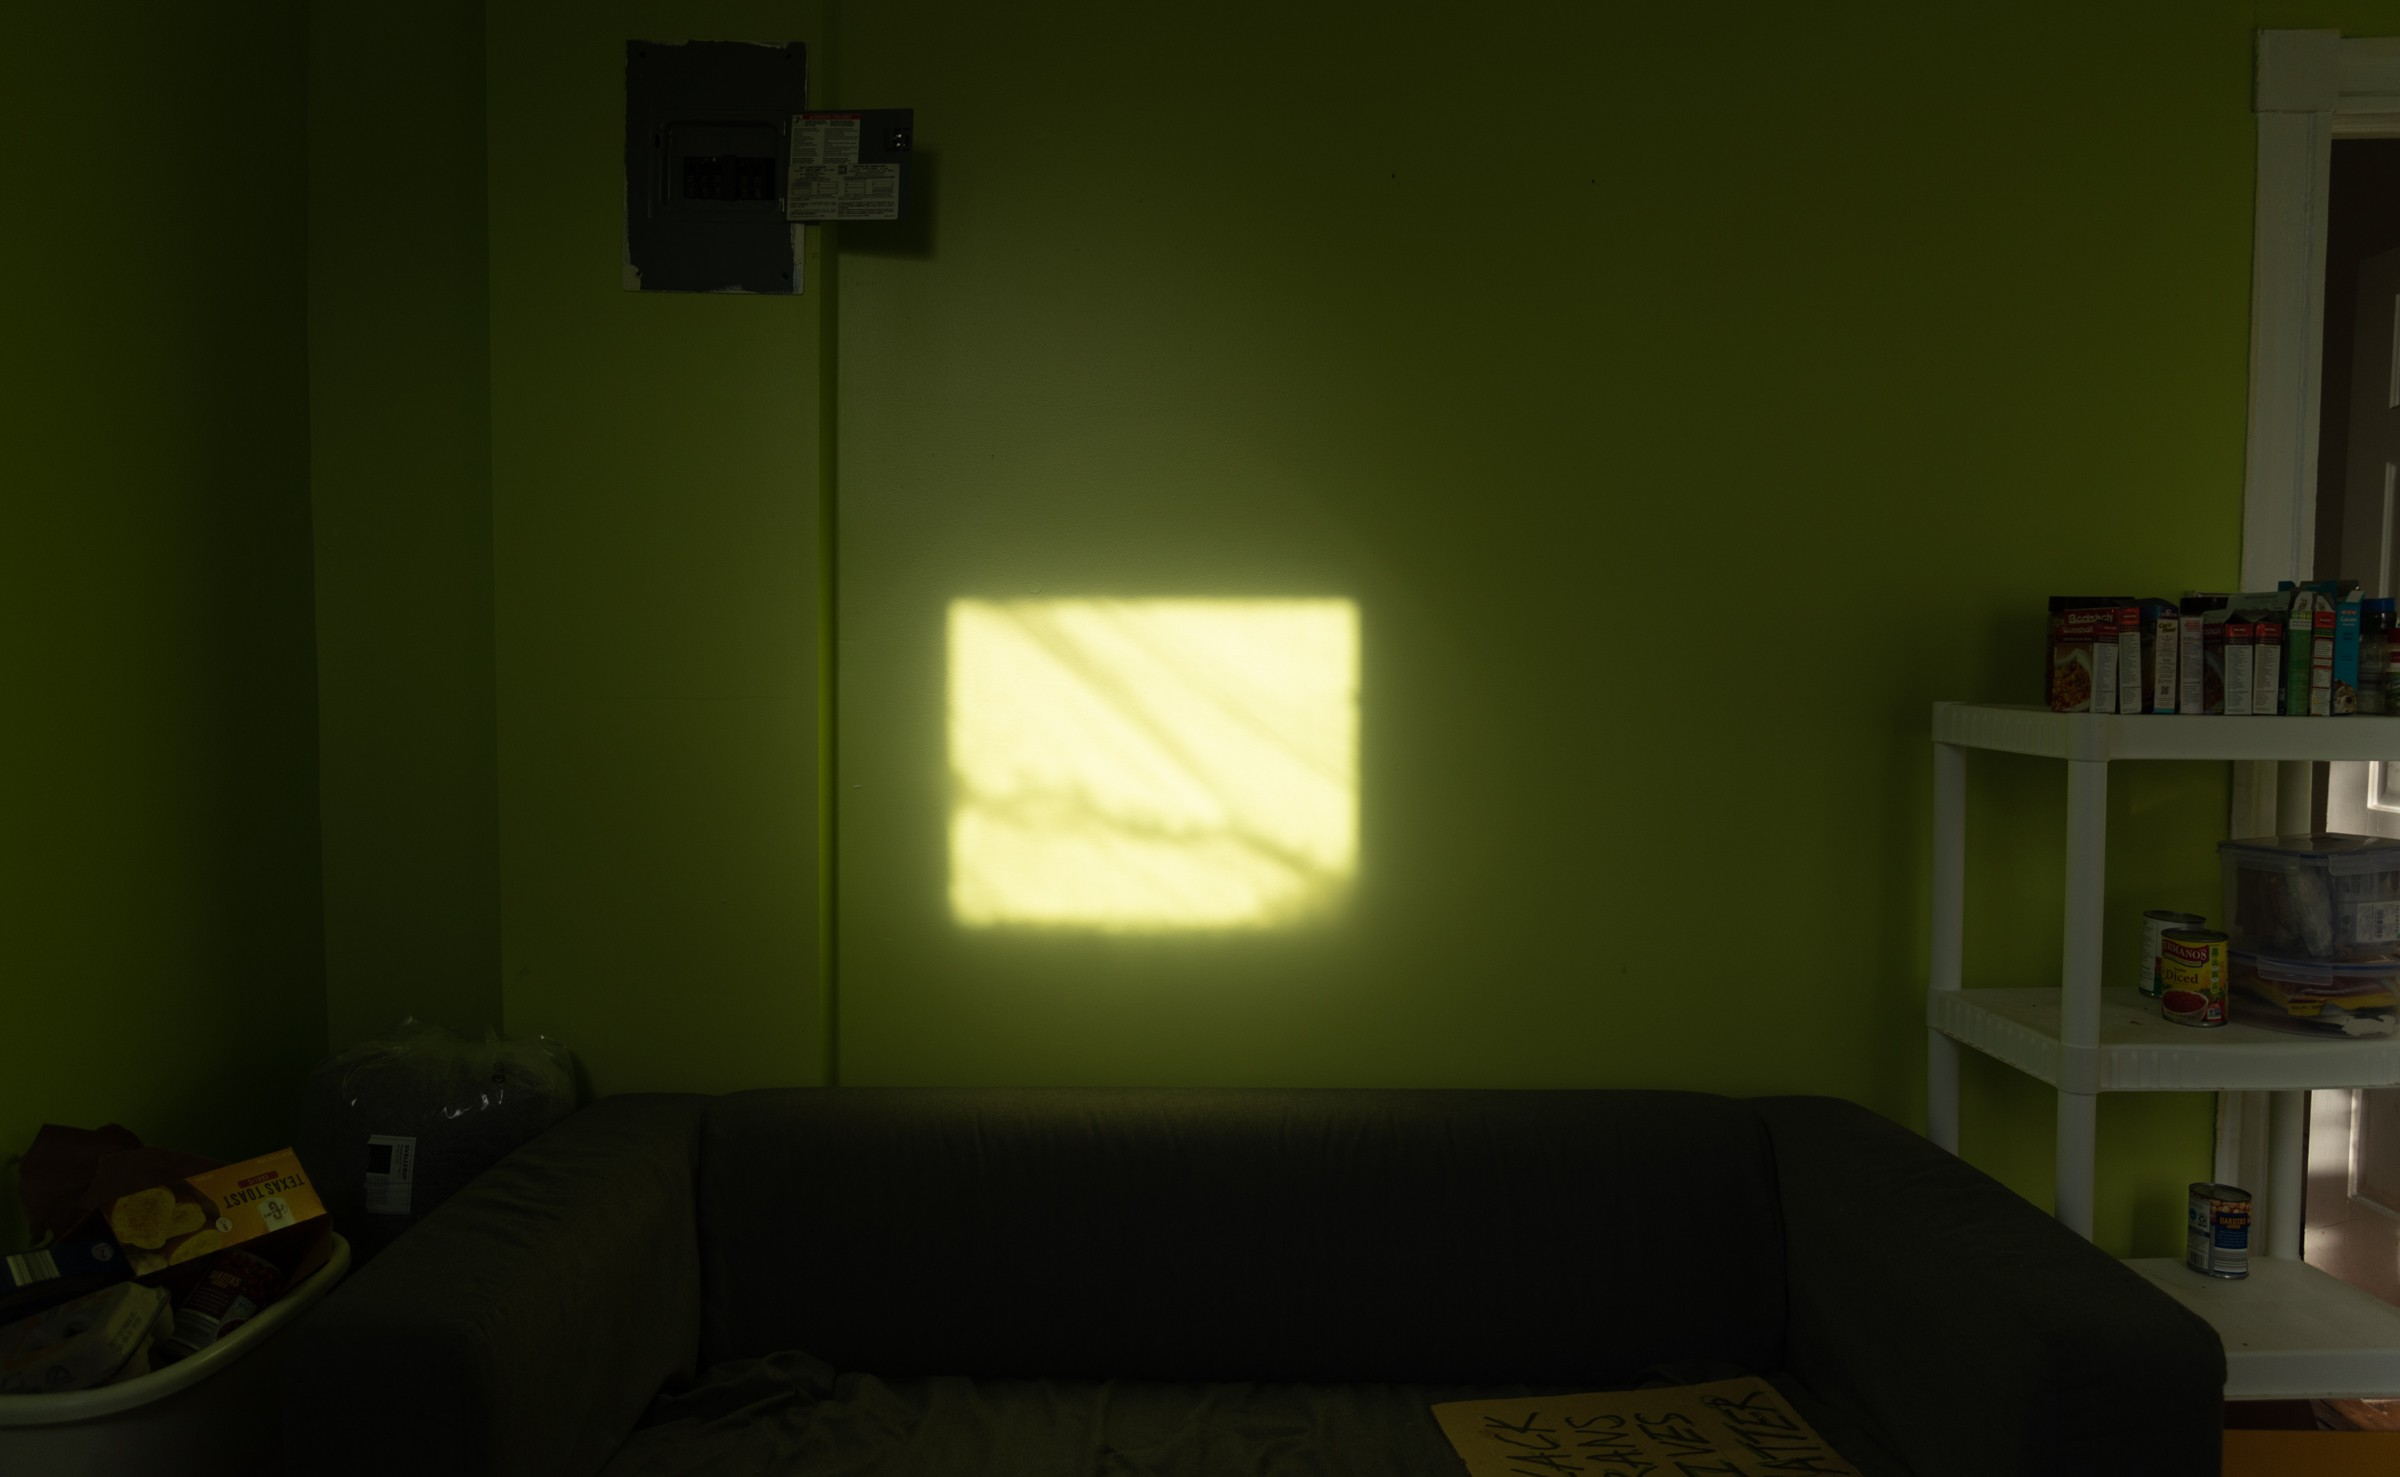 a photo of a green living room with light coming through a window at the center.